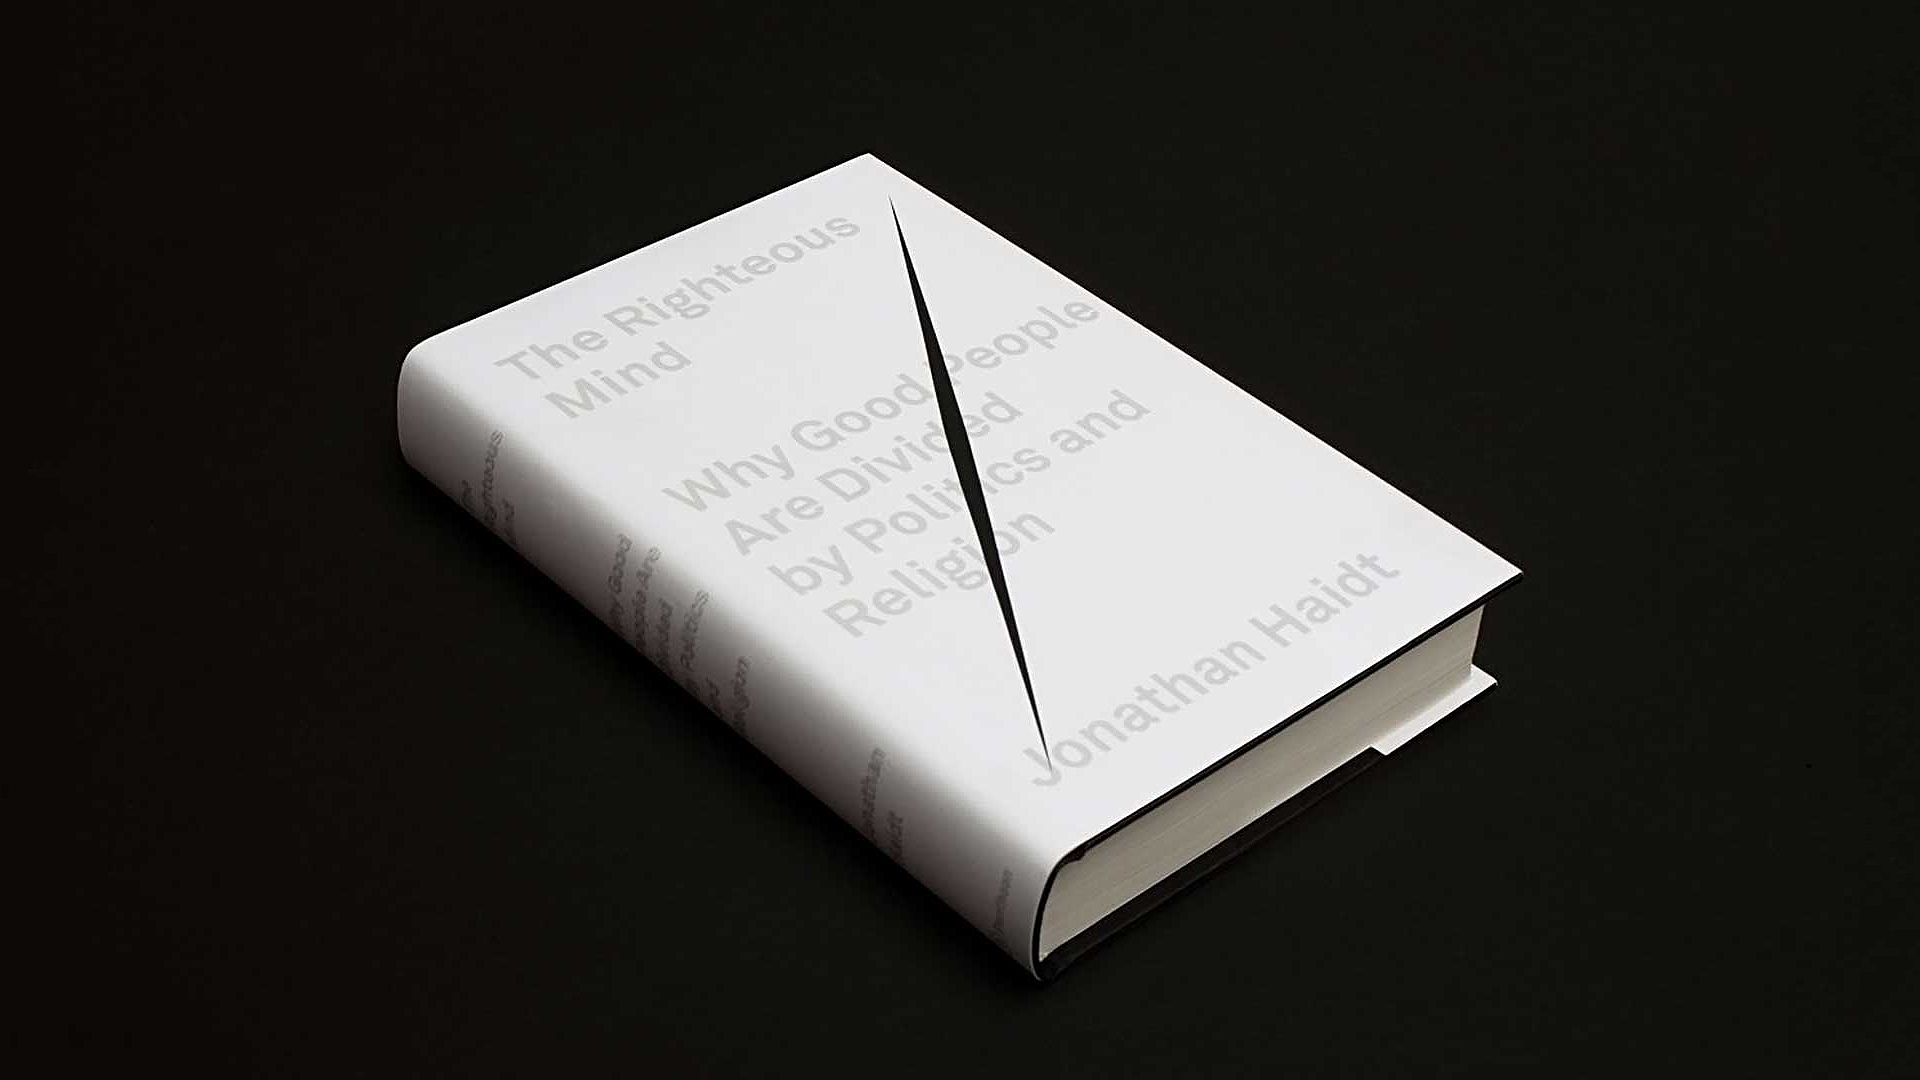 Book Cover White Zinfandel : The righteous mind cover sagmeister walsh